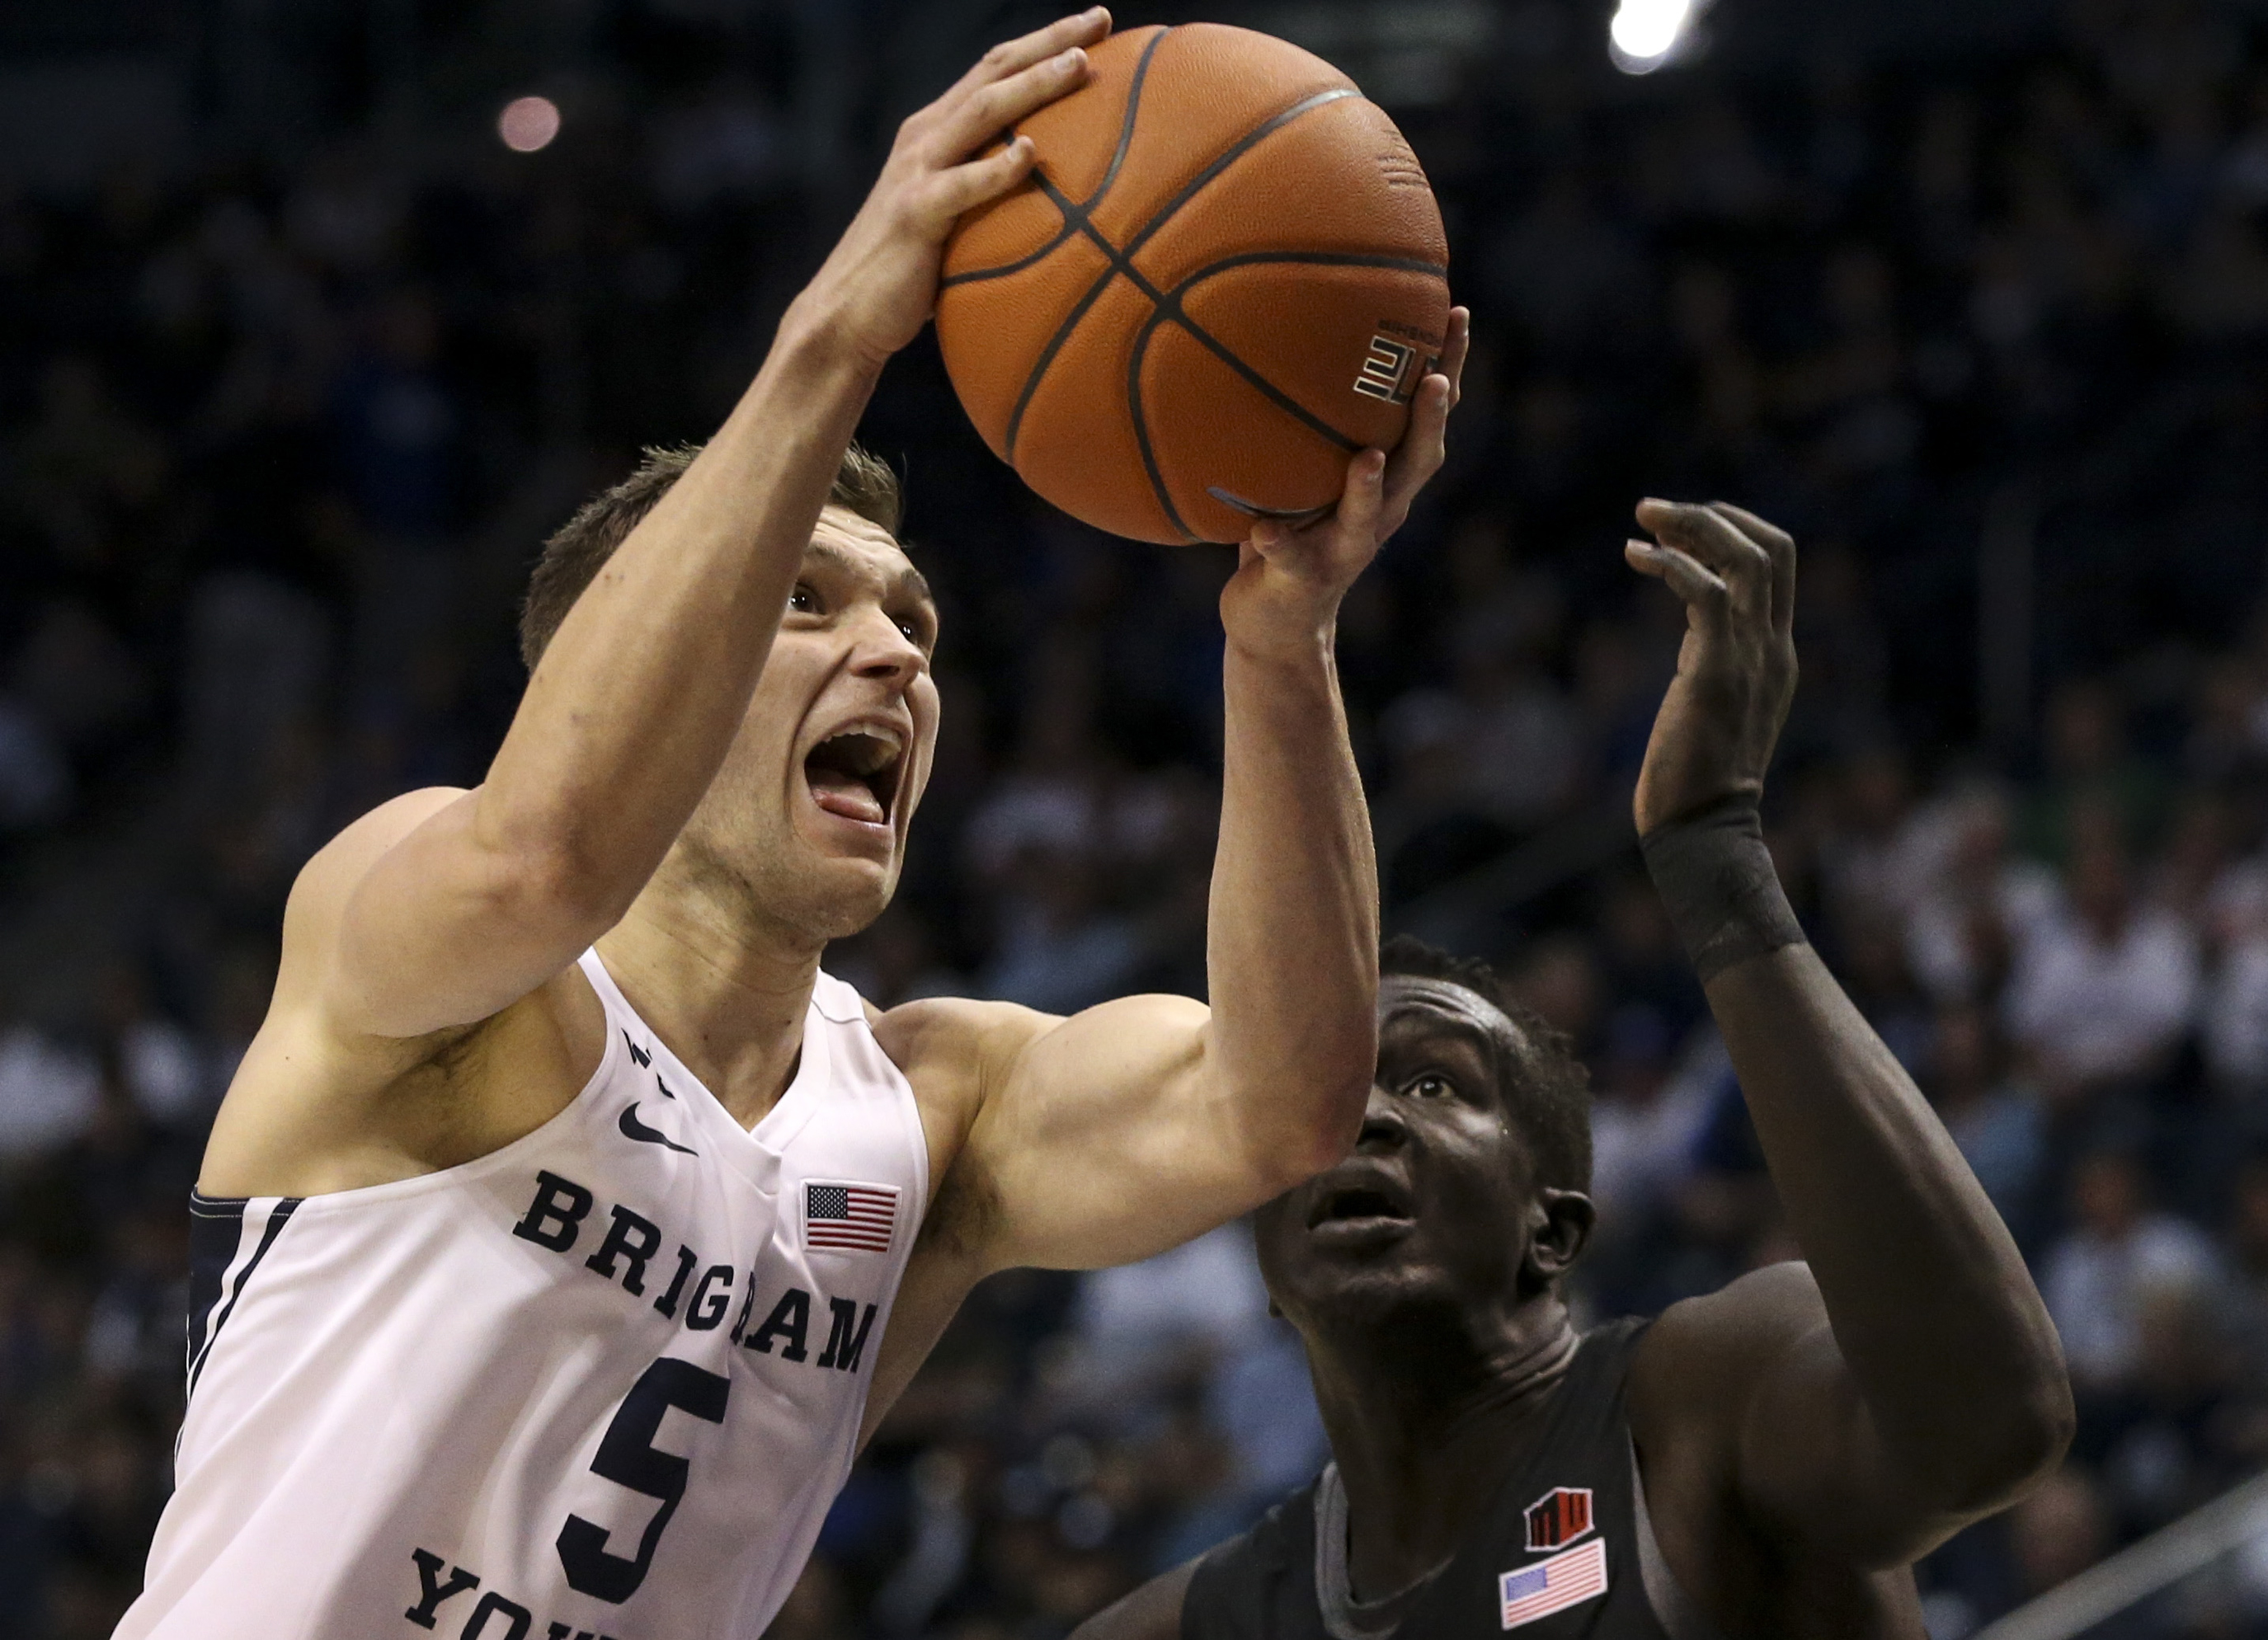 Brigham Young Cougars guard Jake Toolson (5) goes to the basket while defended by San Diego State Aztecs forward Aguek Arop (3) during the first half of an NCAA basketball game at Marriott Center in Provo on Saturday, Nov. 9, 2019.